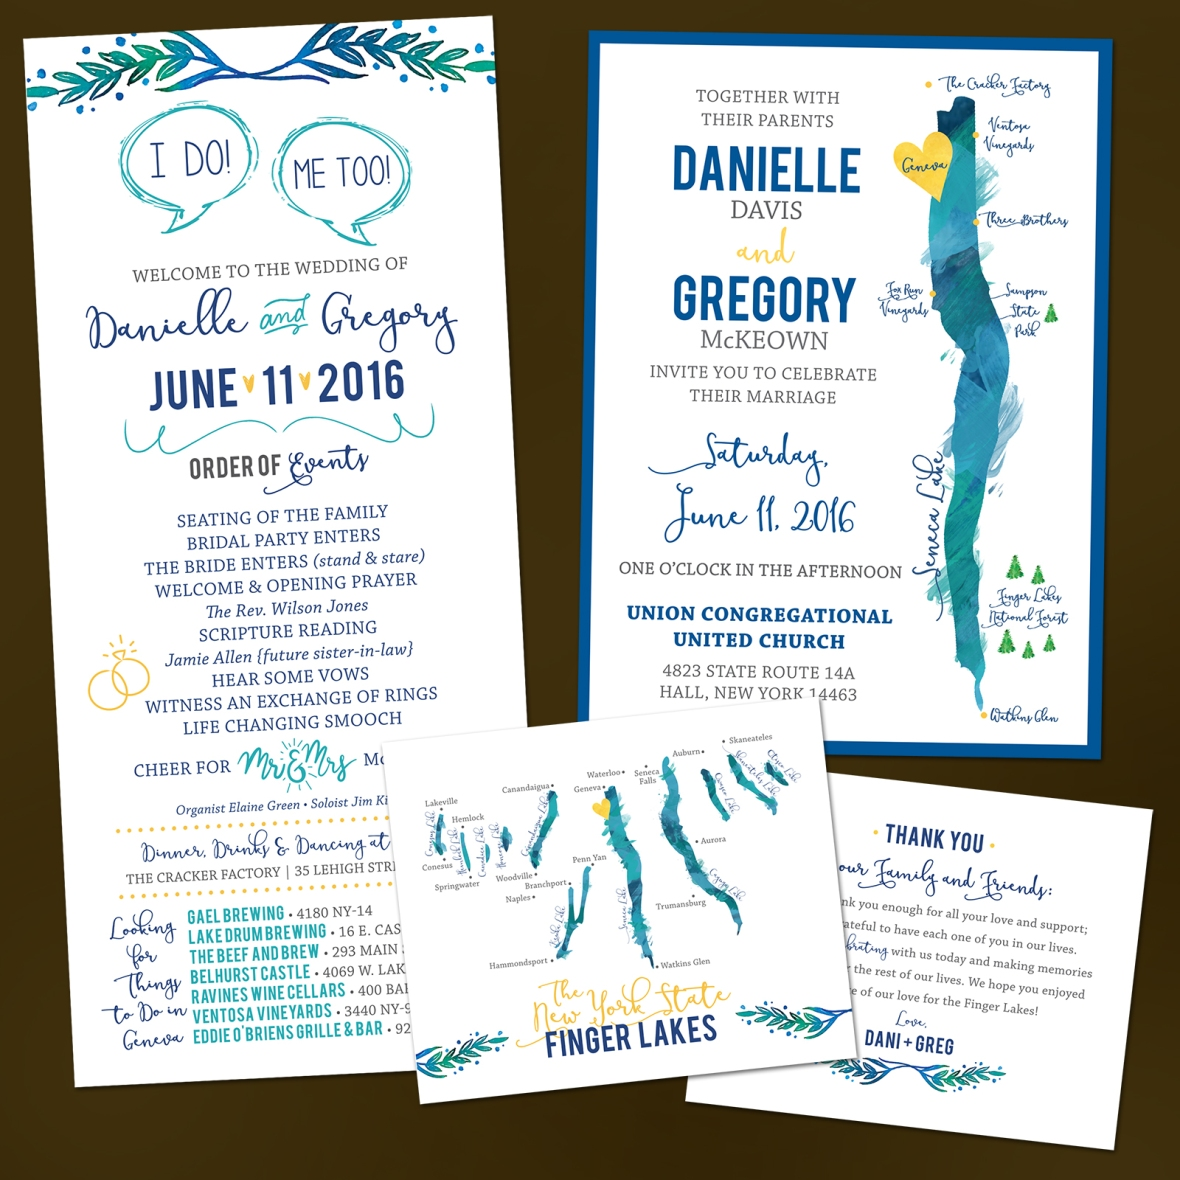 Finger Lakes Wedding Invitations, Lake Wedding, Wedding Program Inspo, Finger Lakes Wedding